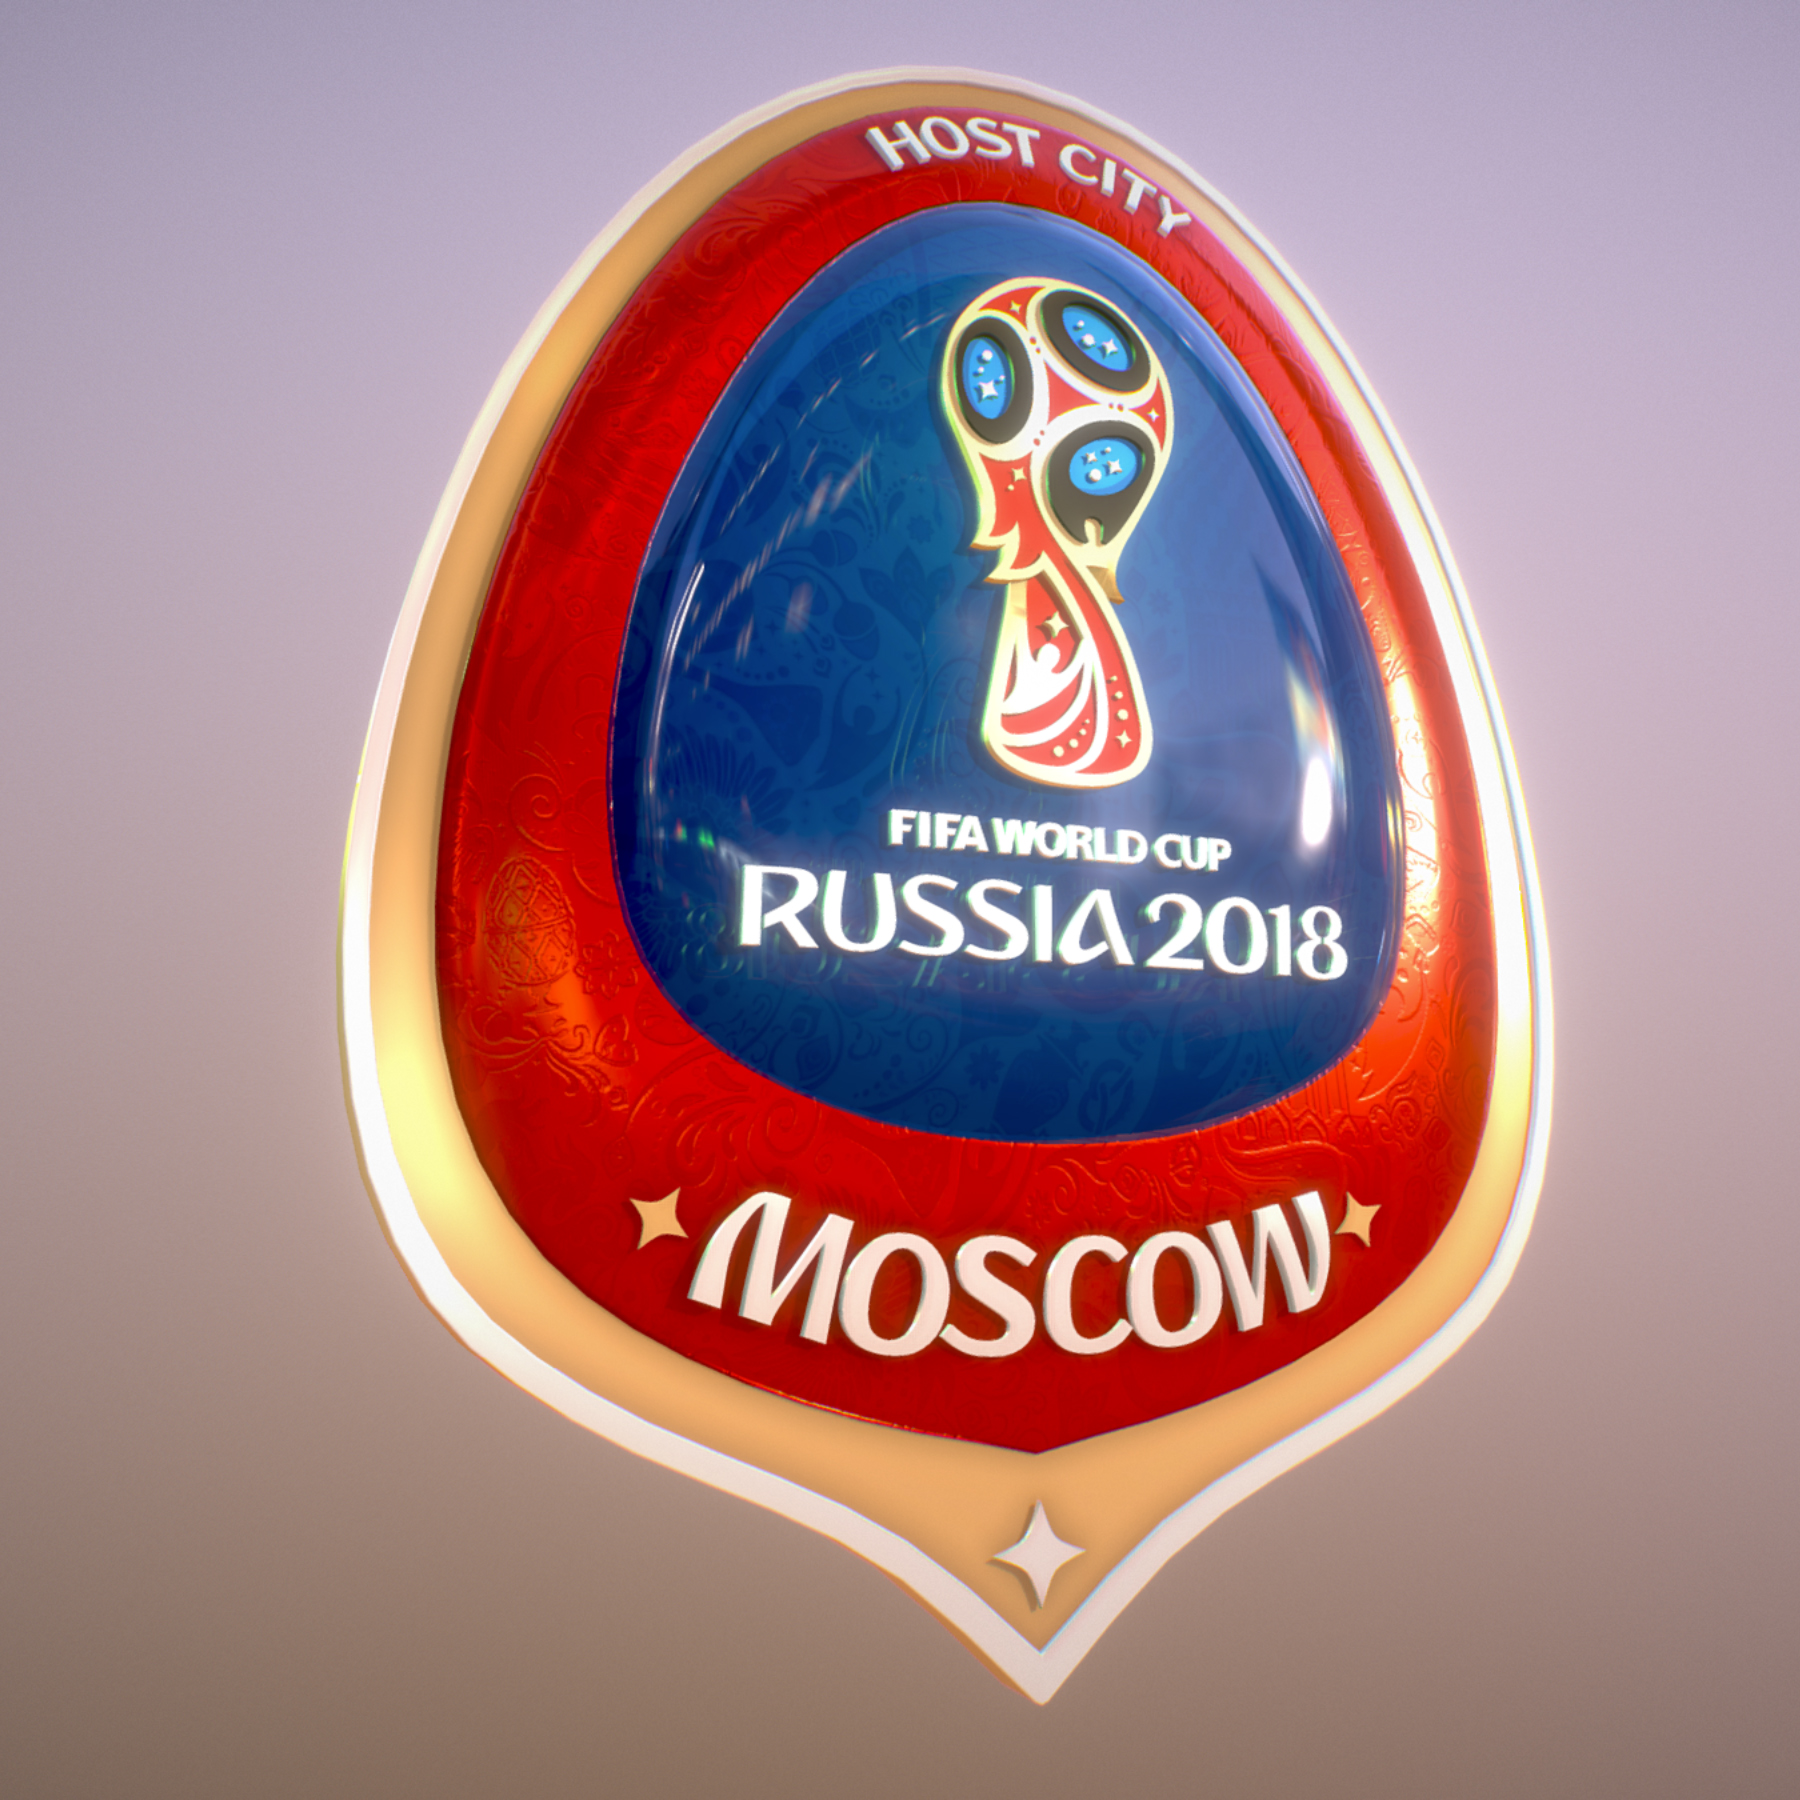 Moscow Host City World Cup Russia 2018 Symbol 3D Model